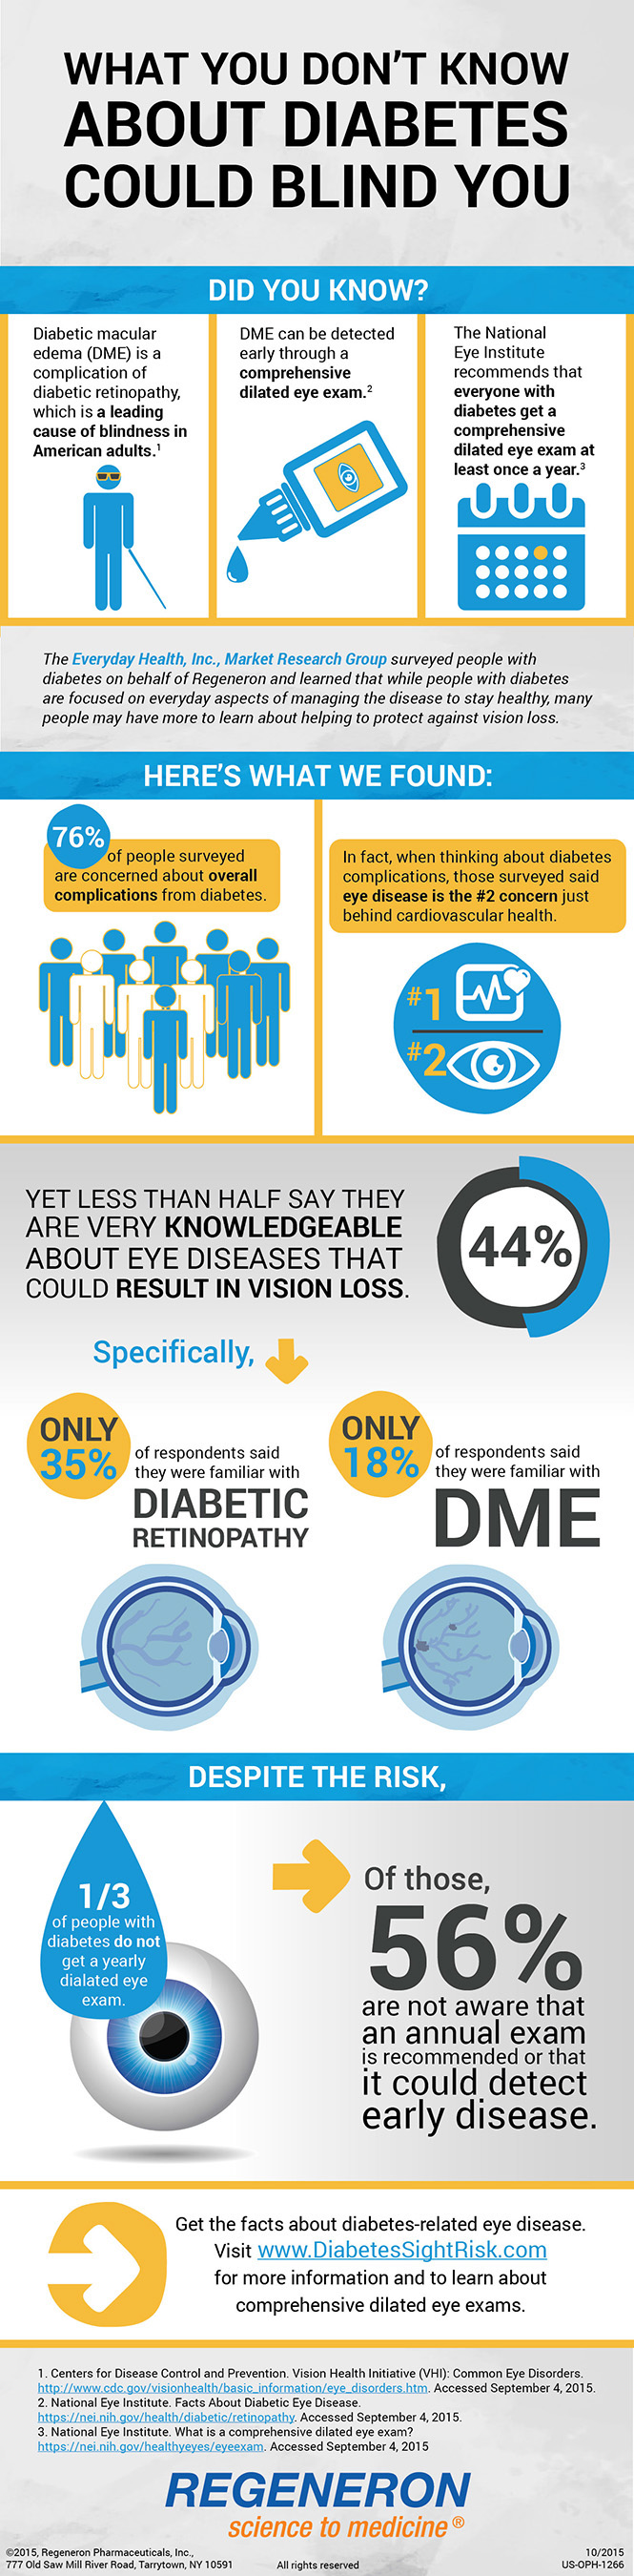 The Diabetes Eye Health Survey infographic shares key findings from the Diabetes Eye Health Survey conducted by Everyday Health, Inc. on behalf of Regeneron Pharmaceuticals.